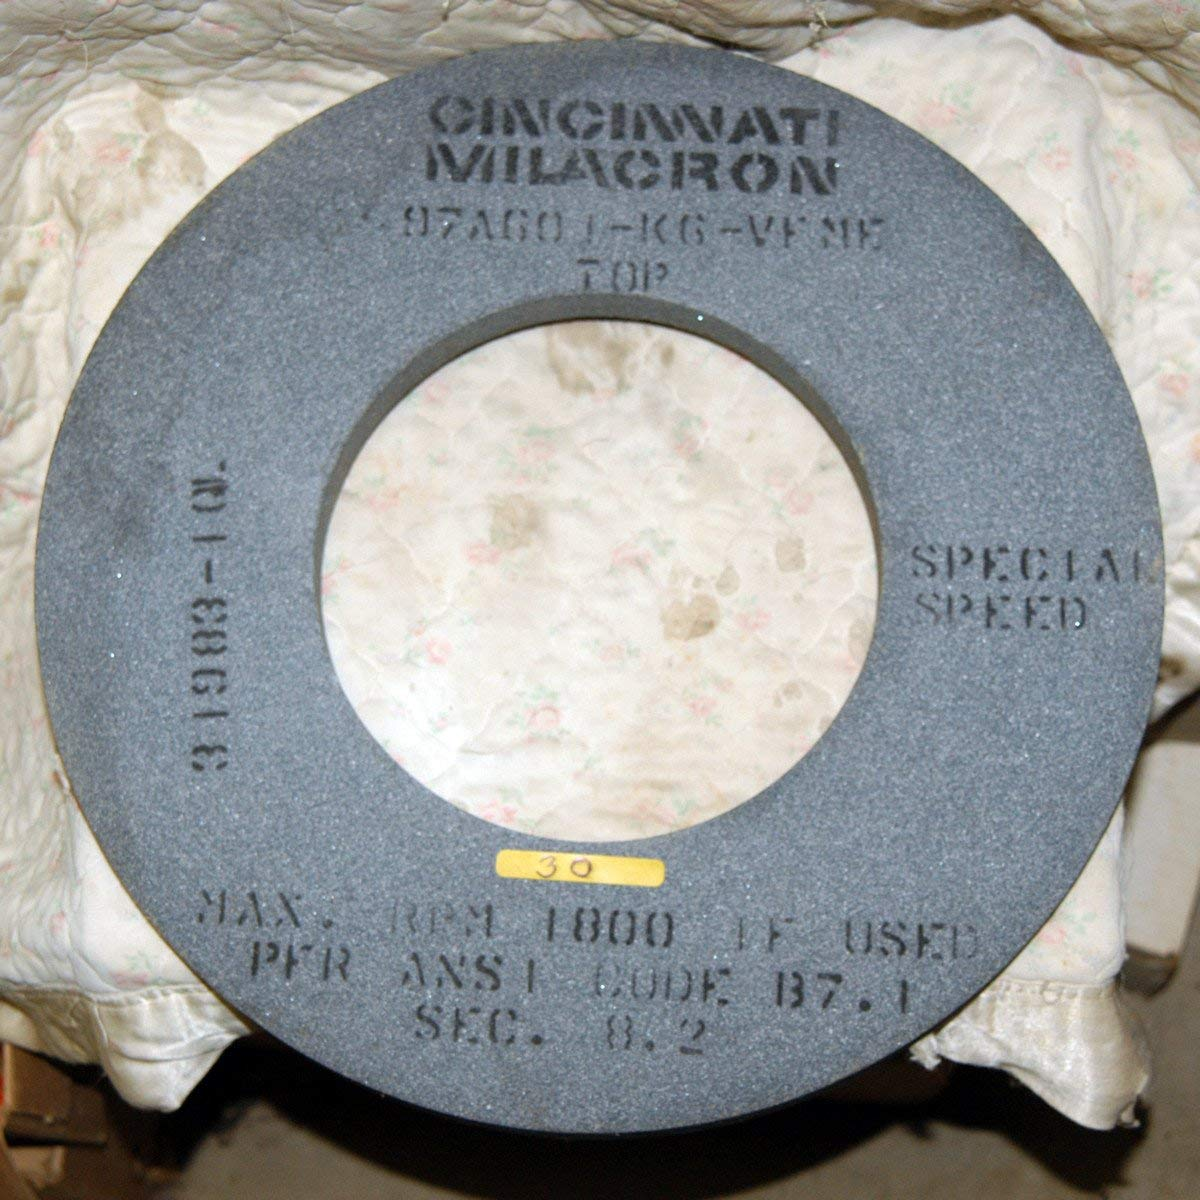 16 X 1 X 8 CYLINDRICAL GRINDING WHEEL SPEC 97A601-K6-VFME